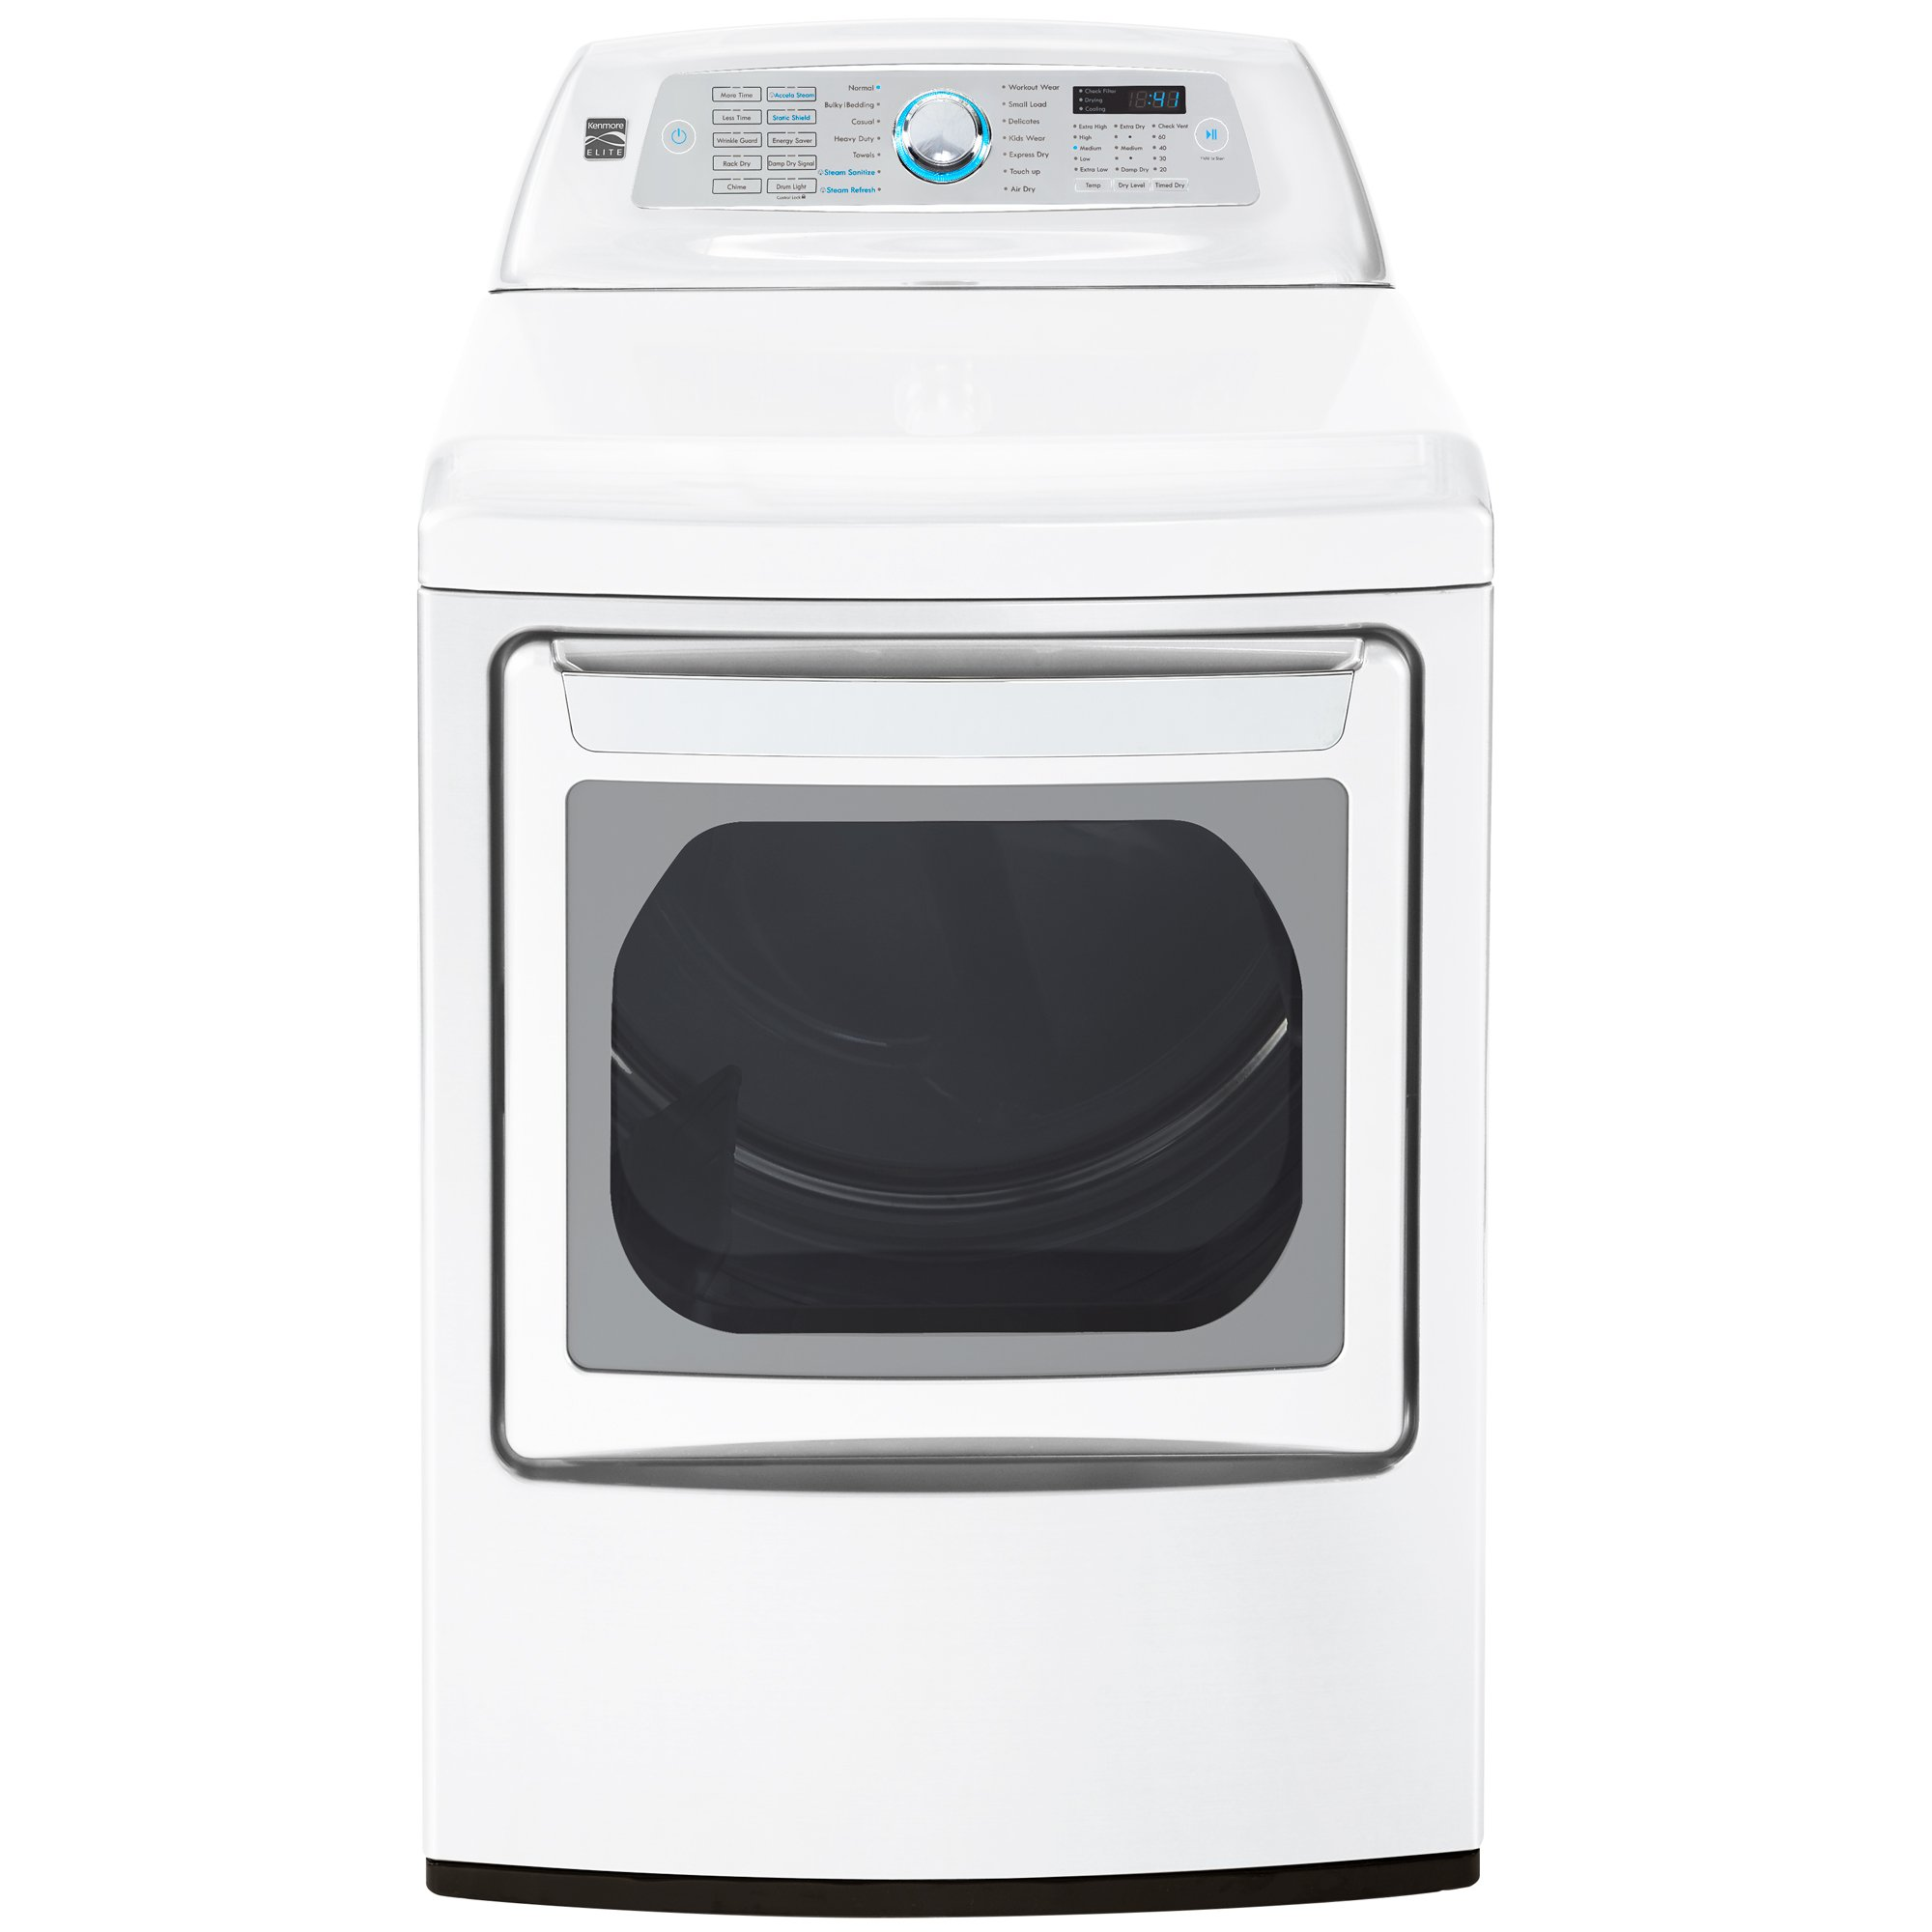 Kenmore Elite 61552 7.3 cu. ft. Electric Dryer in White, includes delivery and hookup